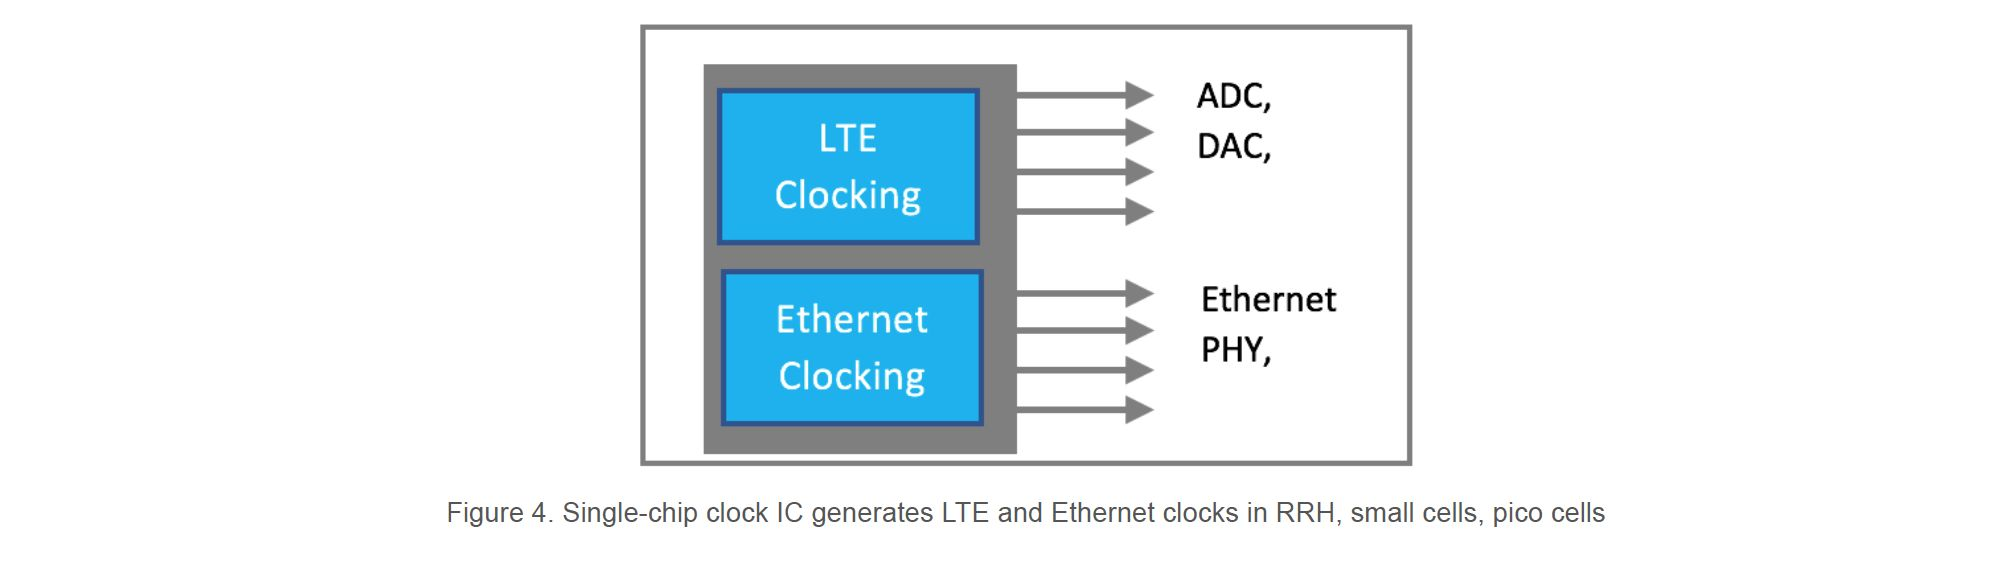 How Ethernet is Driving the Need for New Data Center and Wireless ...